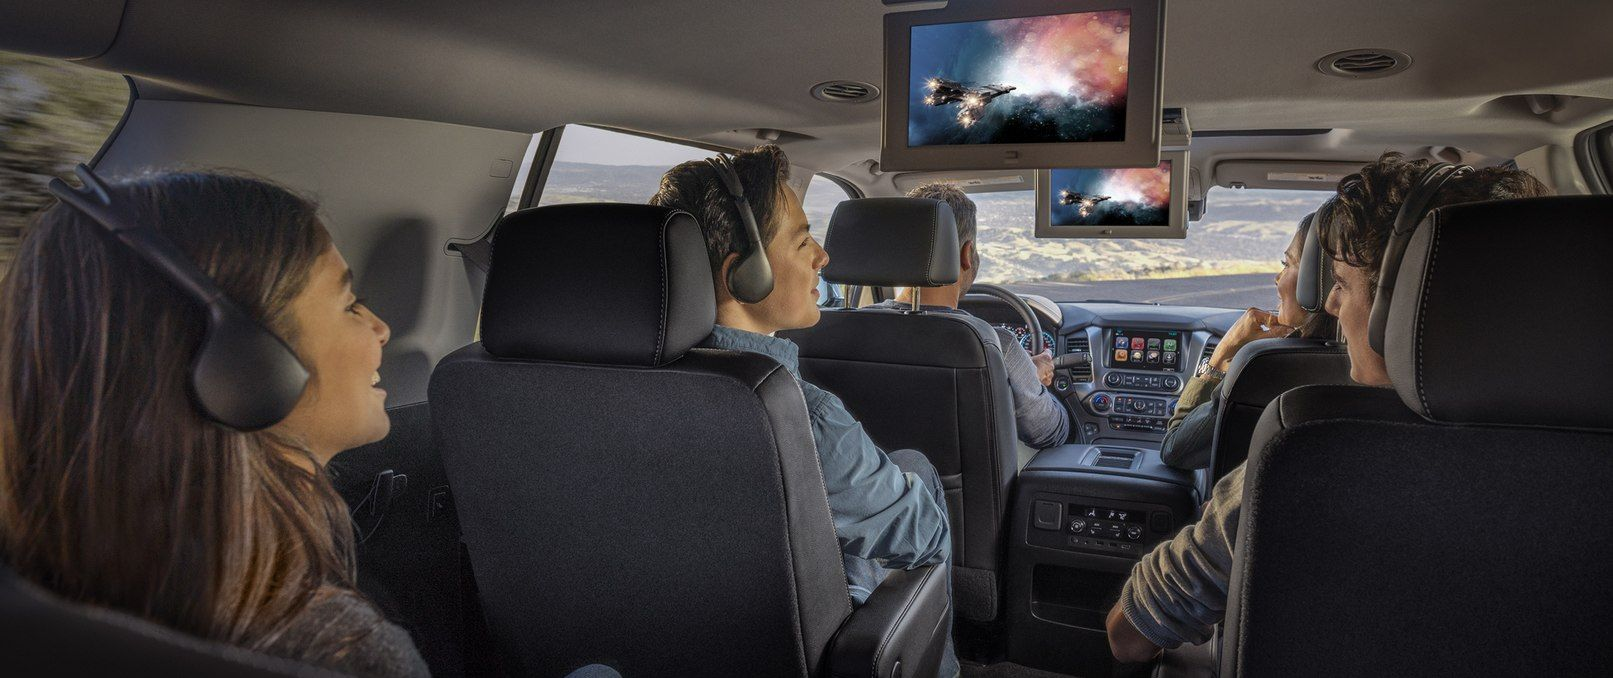 Stay Entertained in the 2019 Chevrolet Suburban!